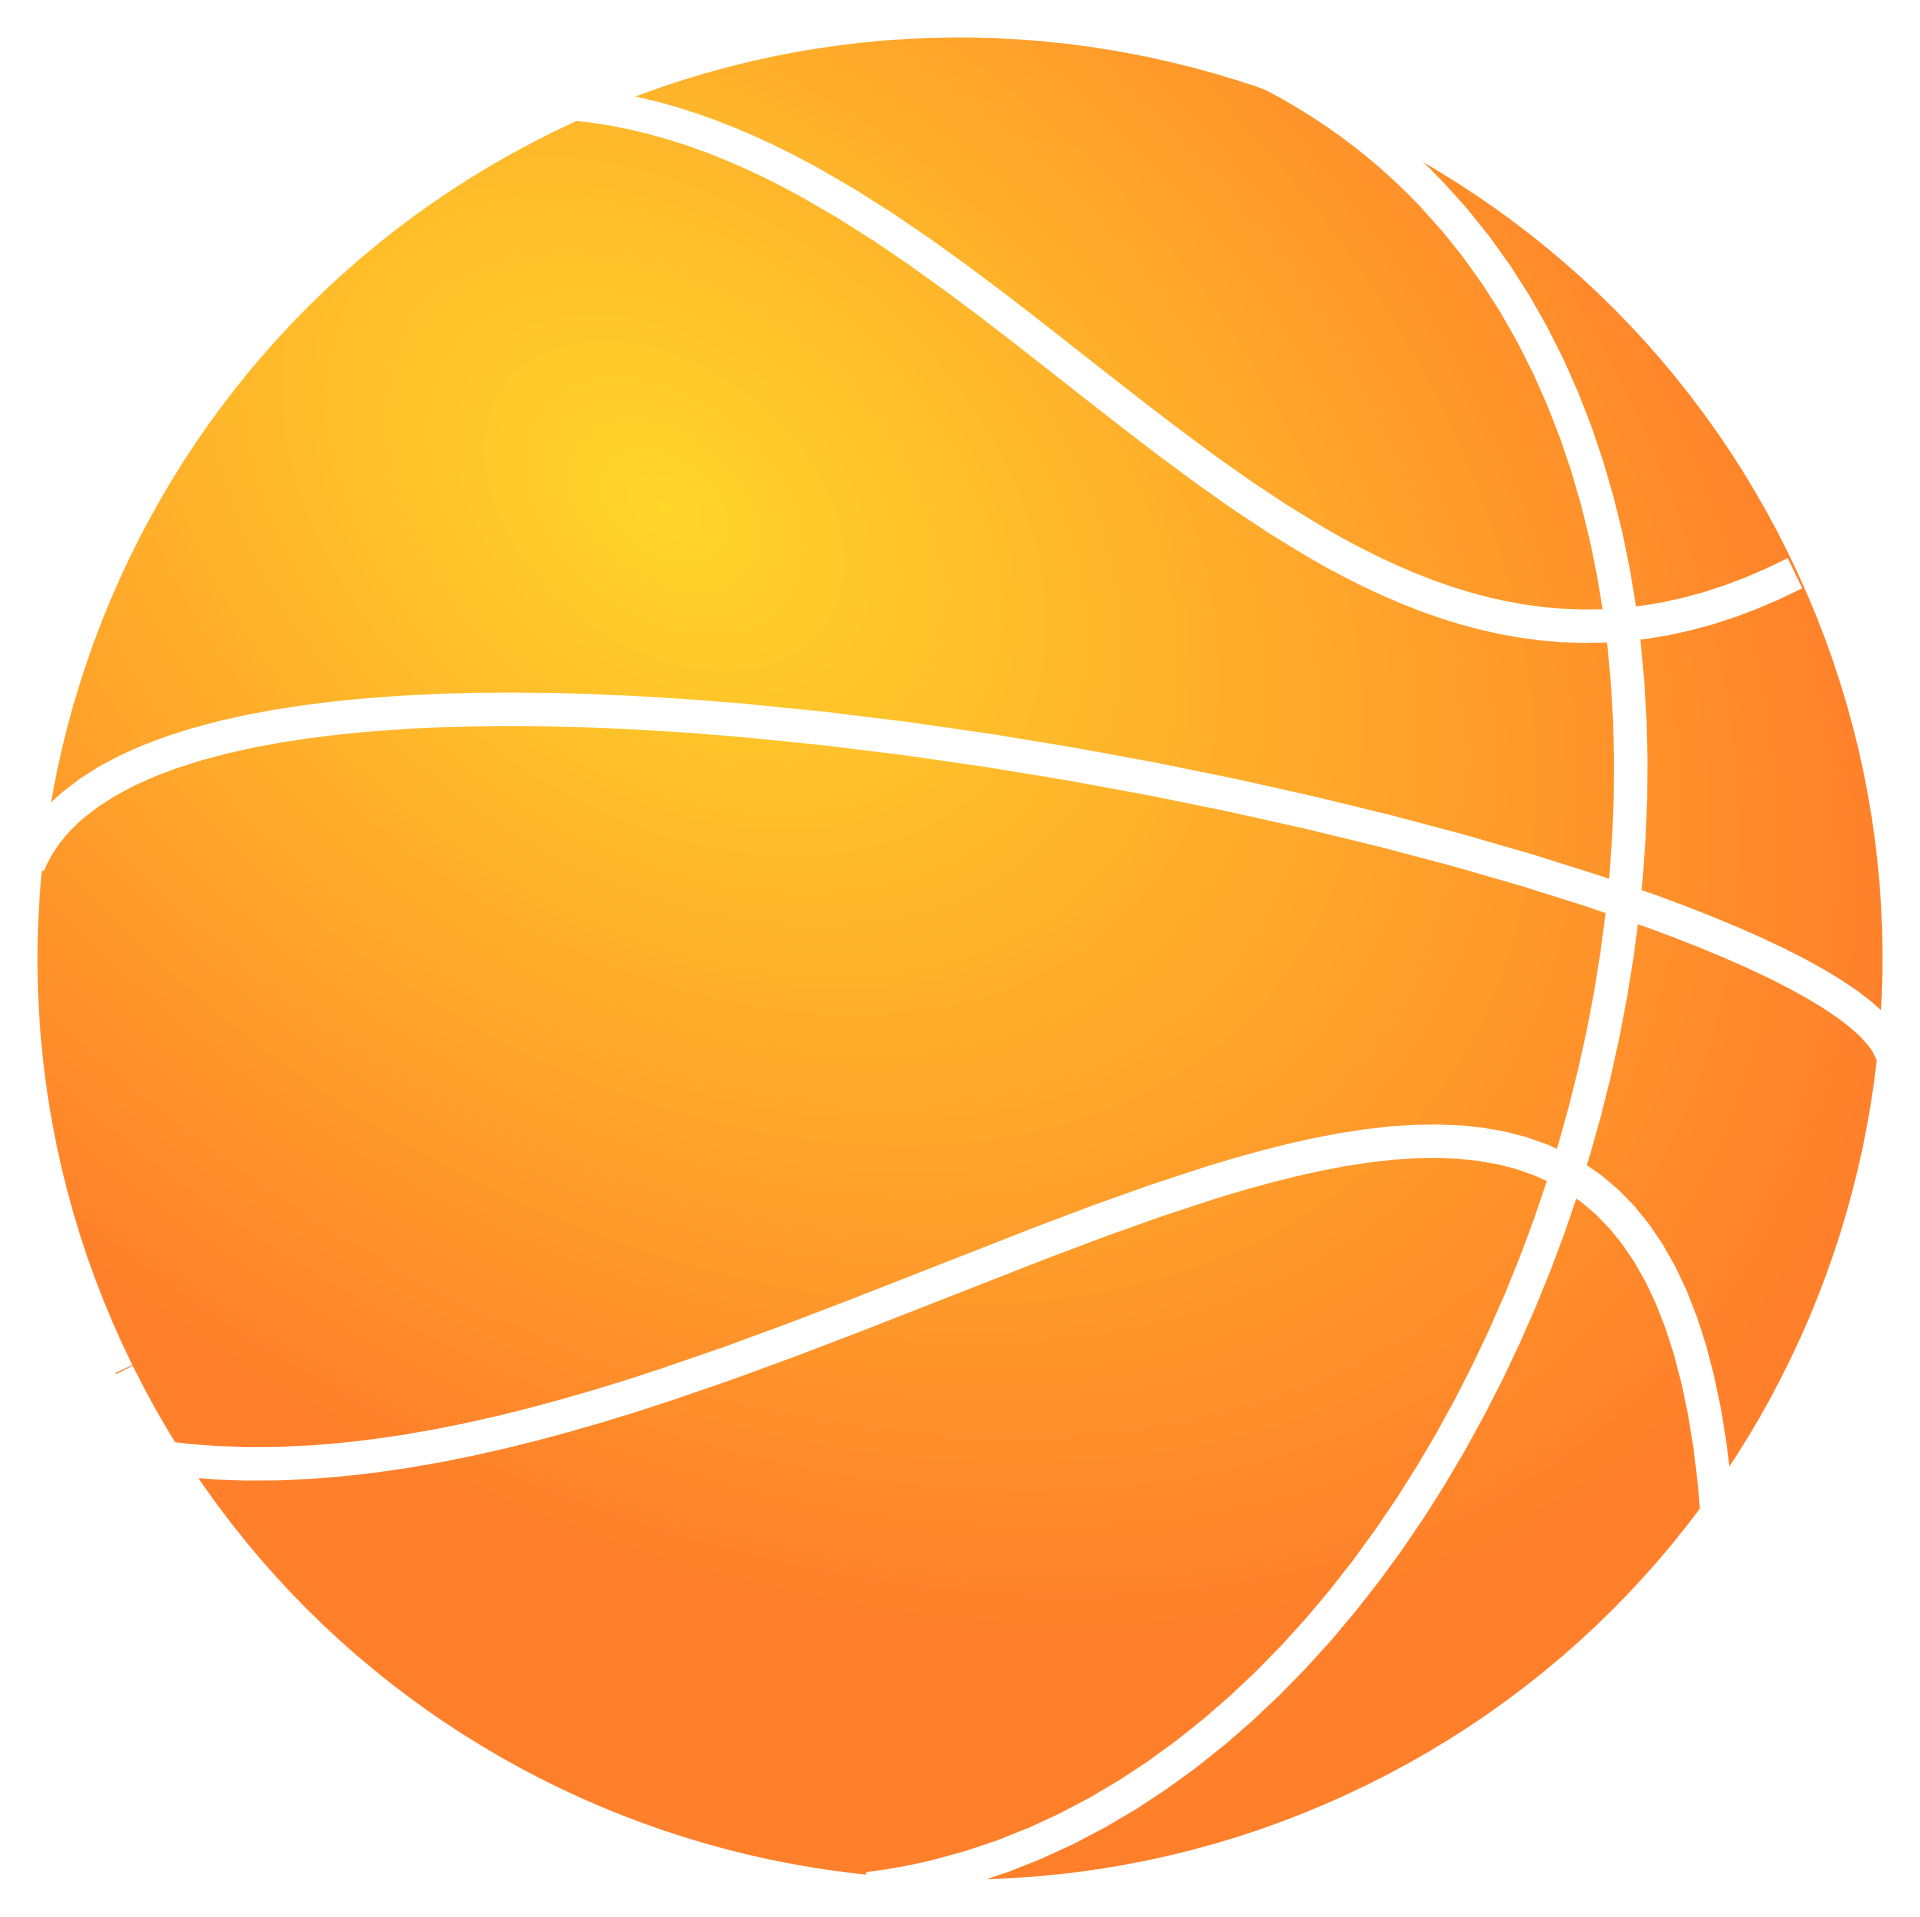 Outline of basketball art. Ball clip orange thing graphic royalty free